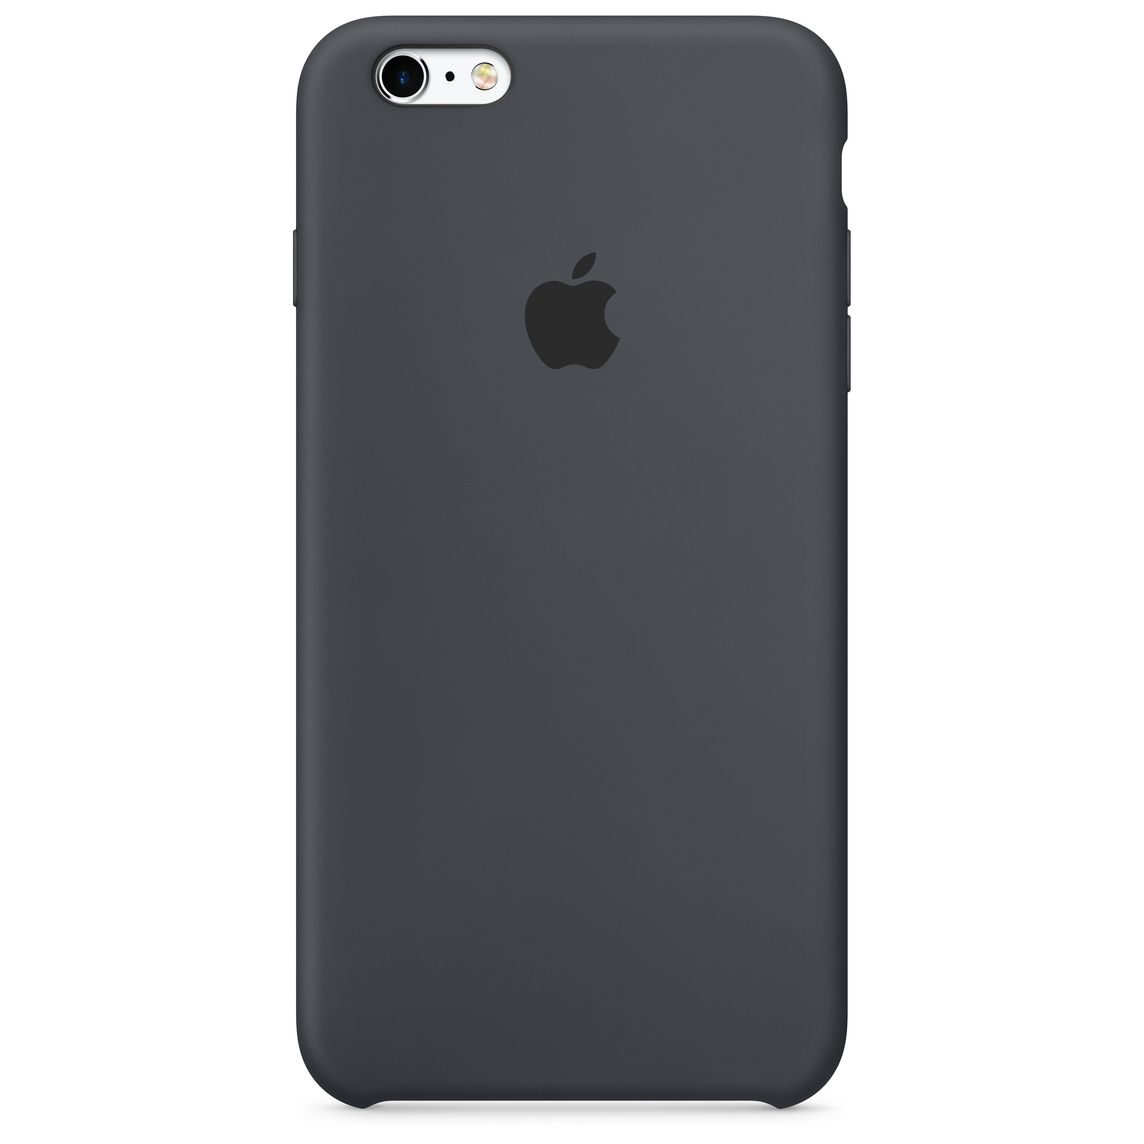 innovative design 0c578 5420e iPhone 6 Plus / 6s Plus Silicone Case - Charcoal Grey